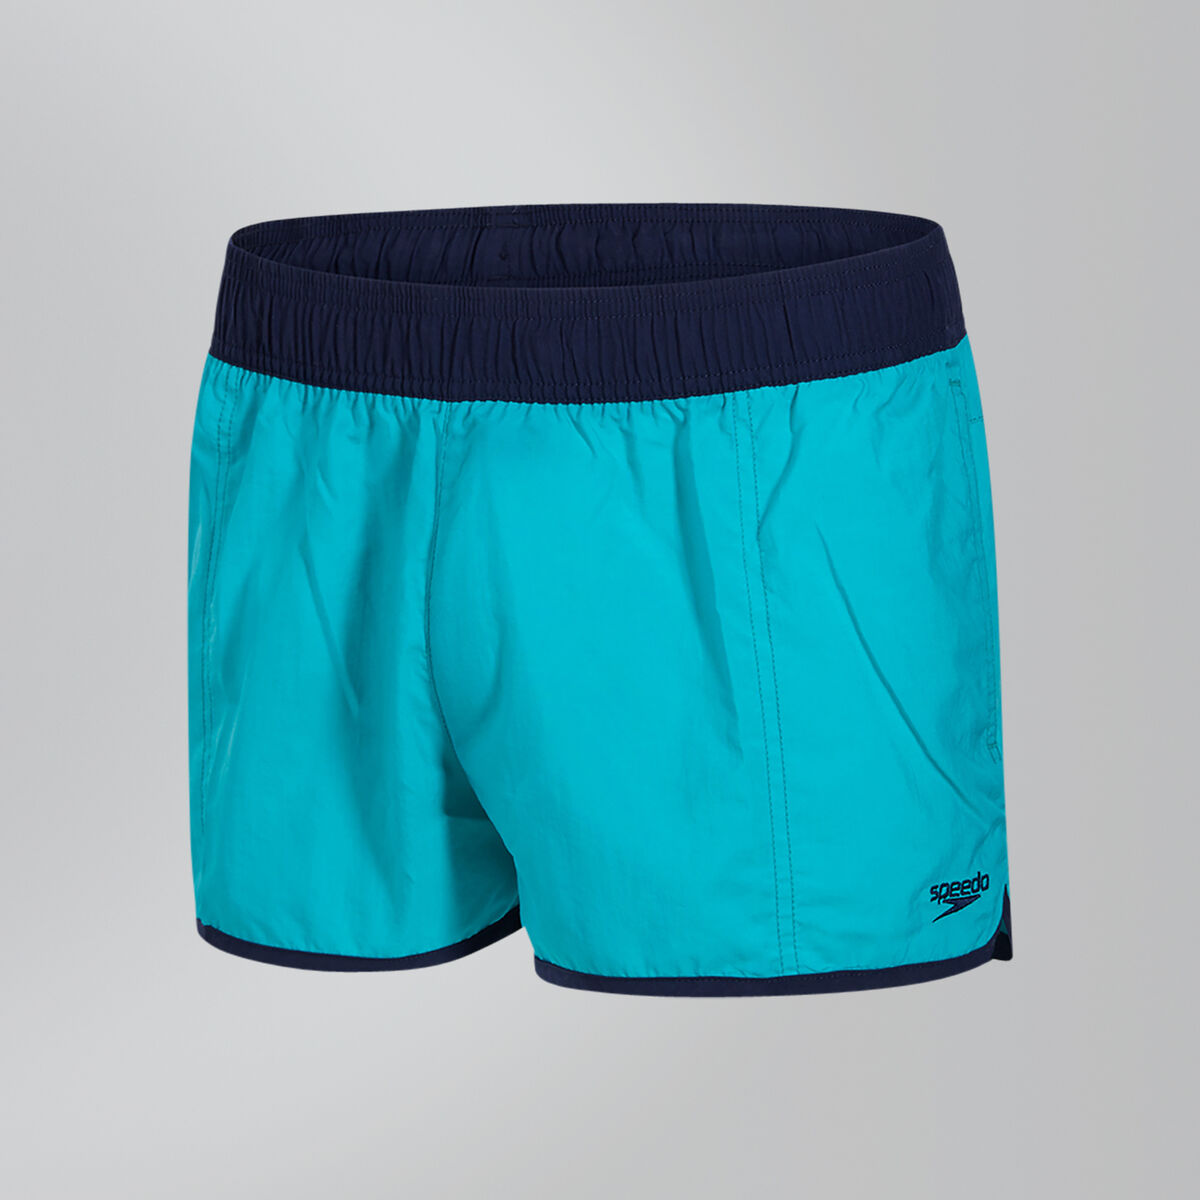 "Female Colour Mix 10"" Swim Shorts"